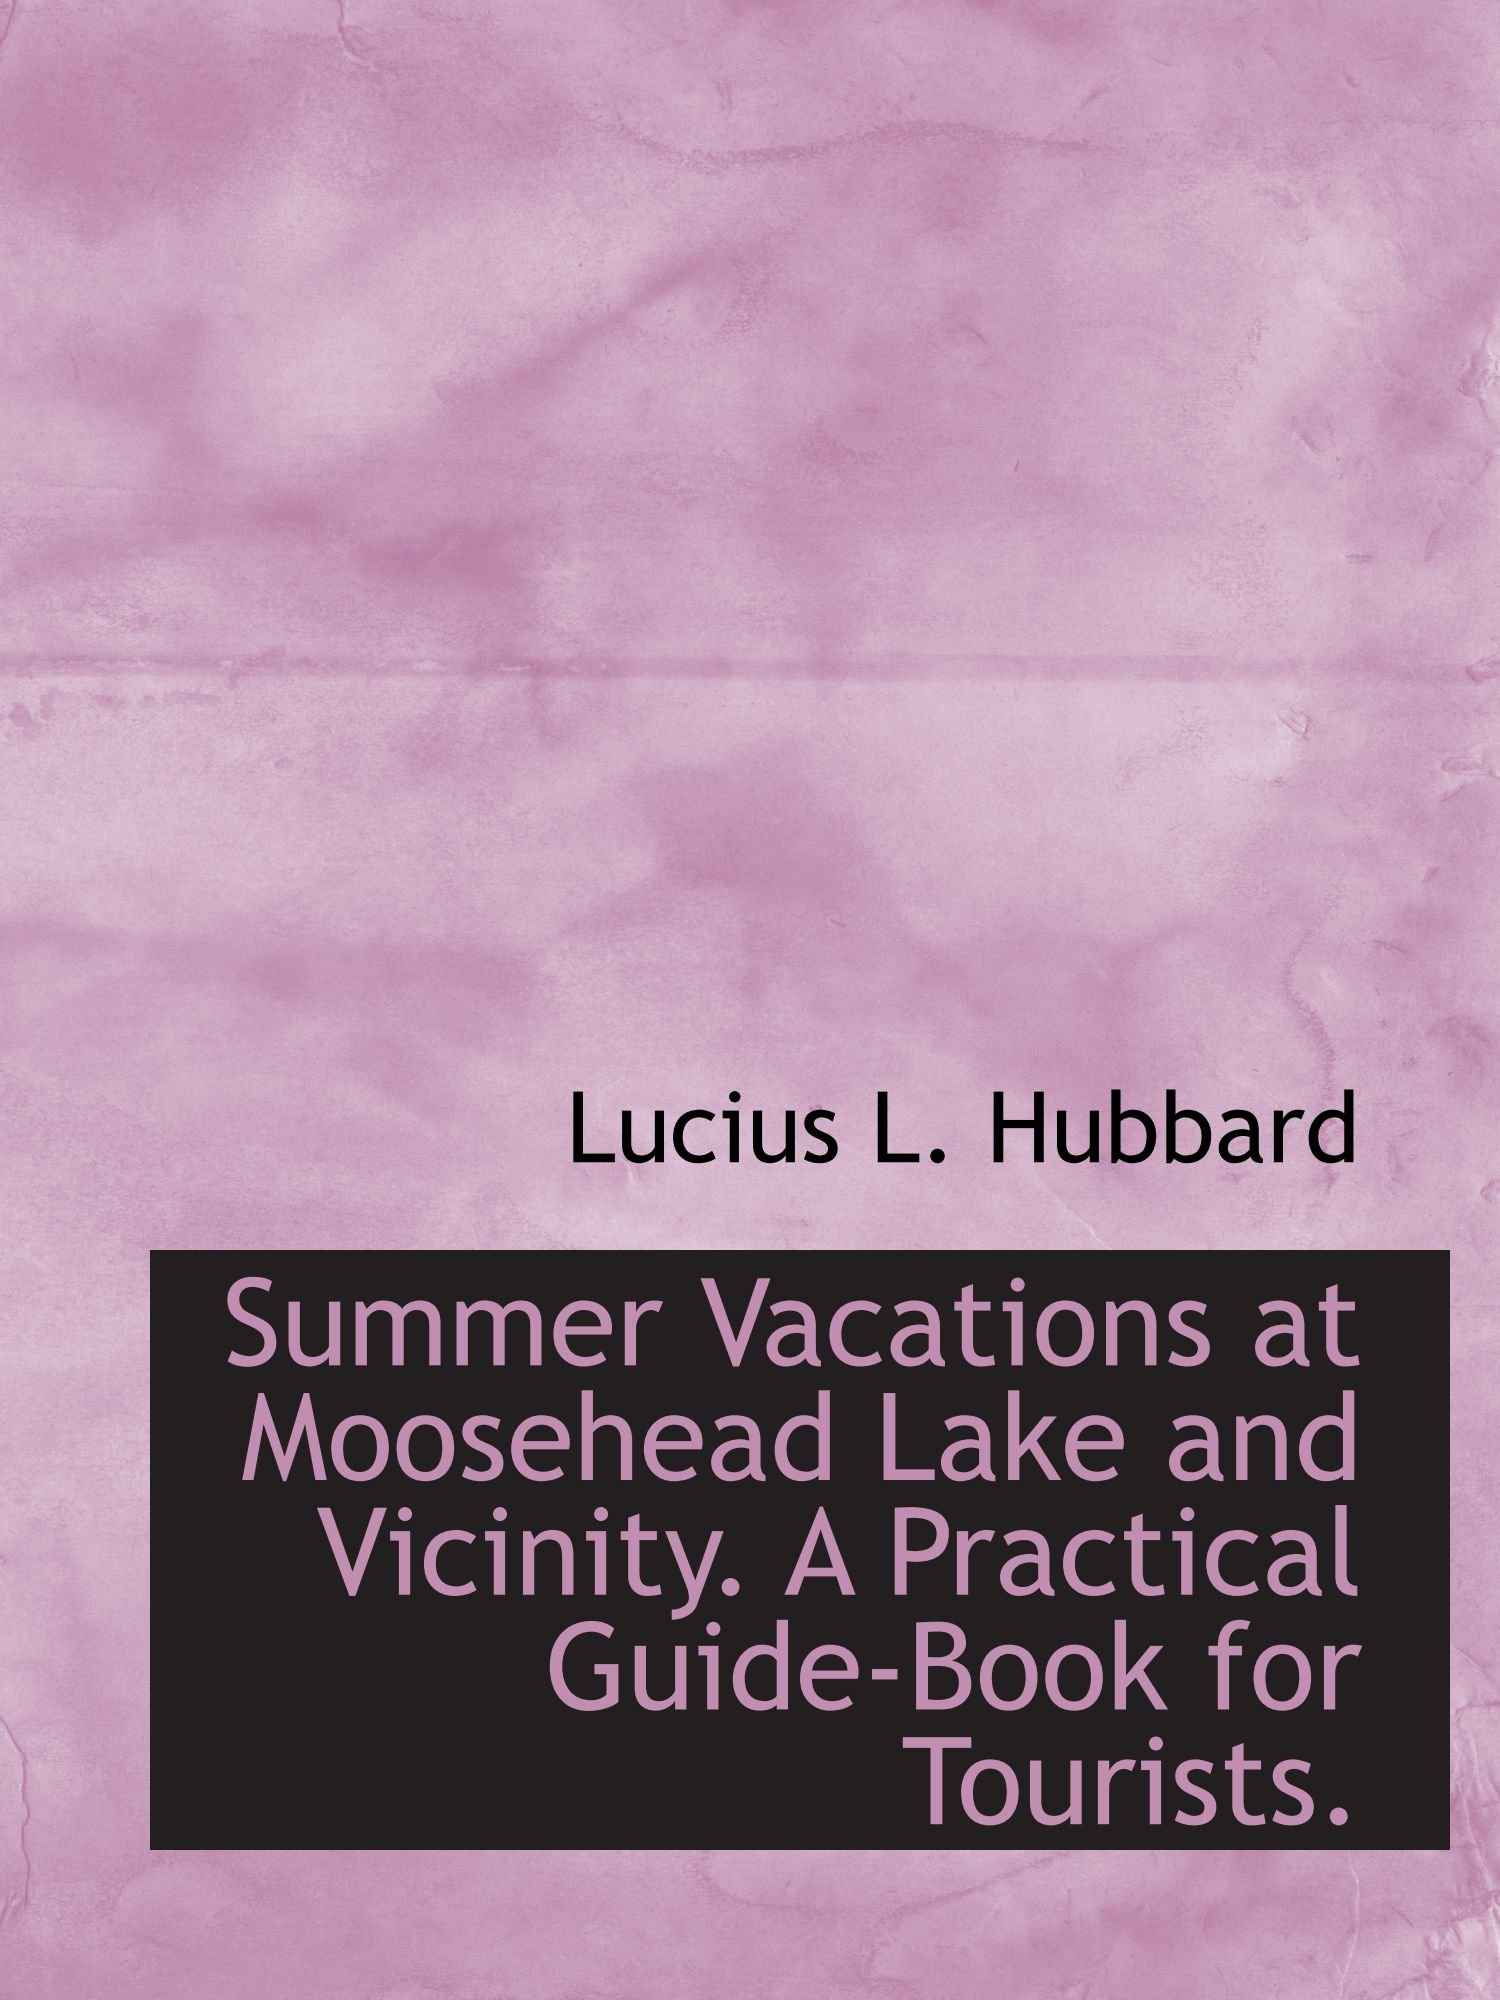 Download Summer Vacations at Moosehead Lake and Vicinity. A Practical Guide-Book for Tourists. ebook